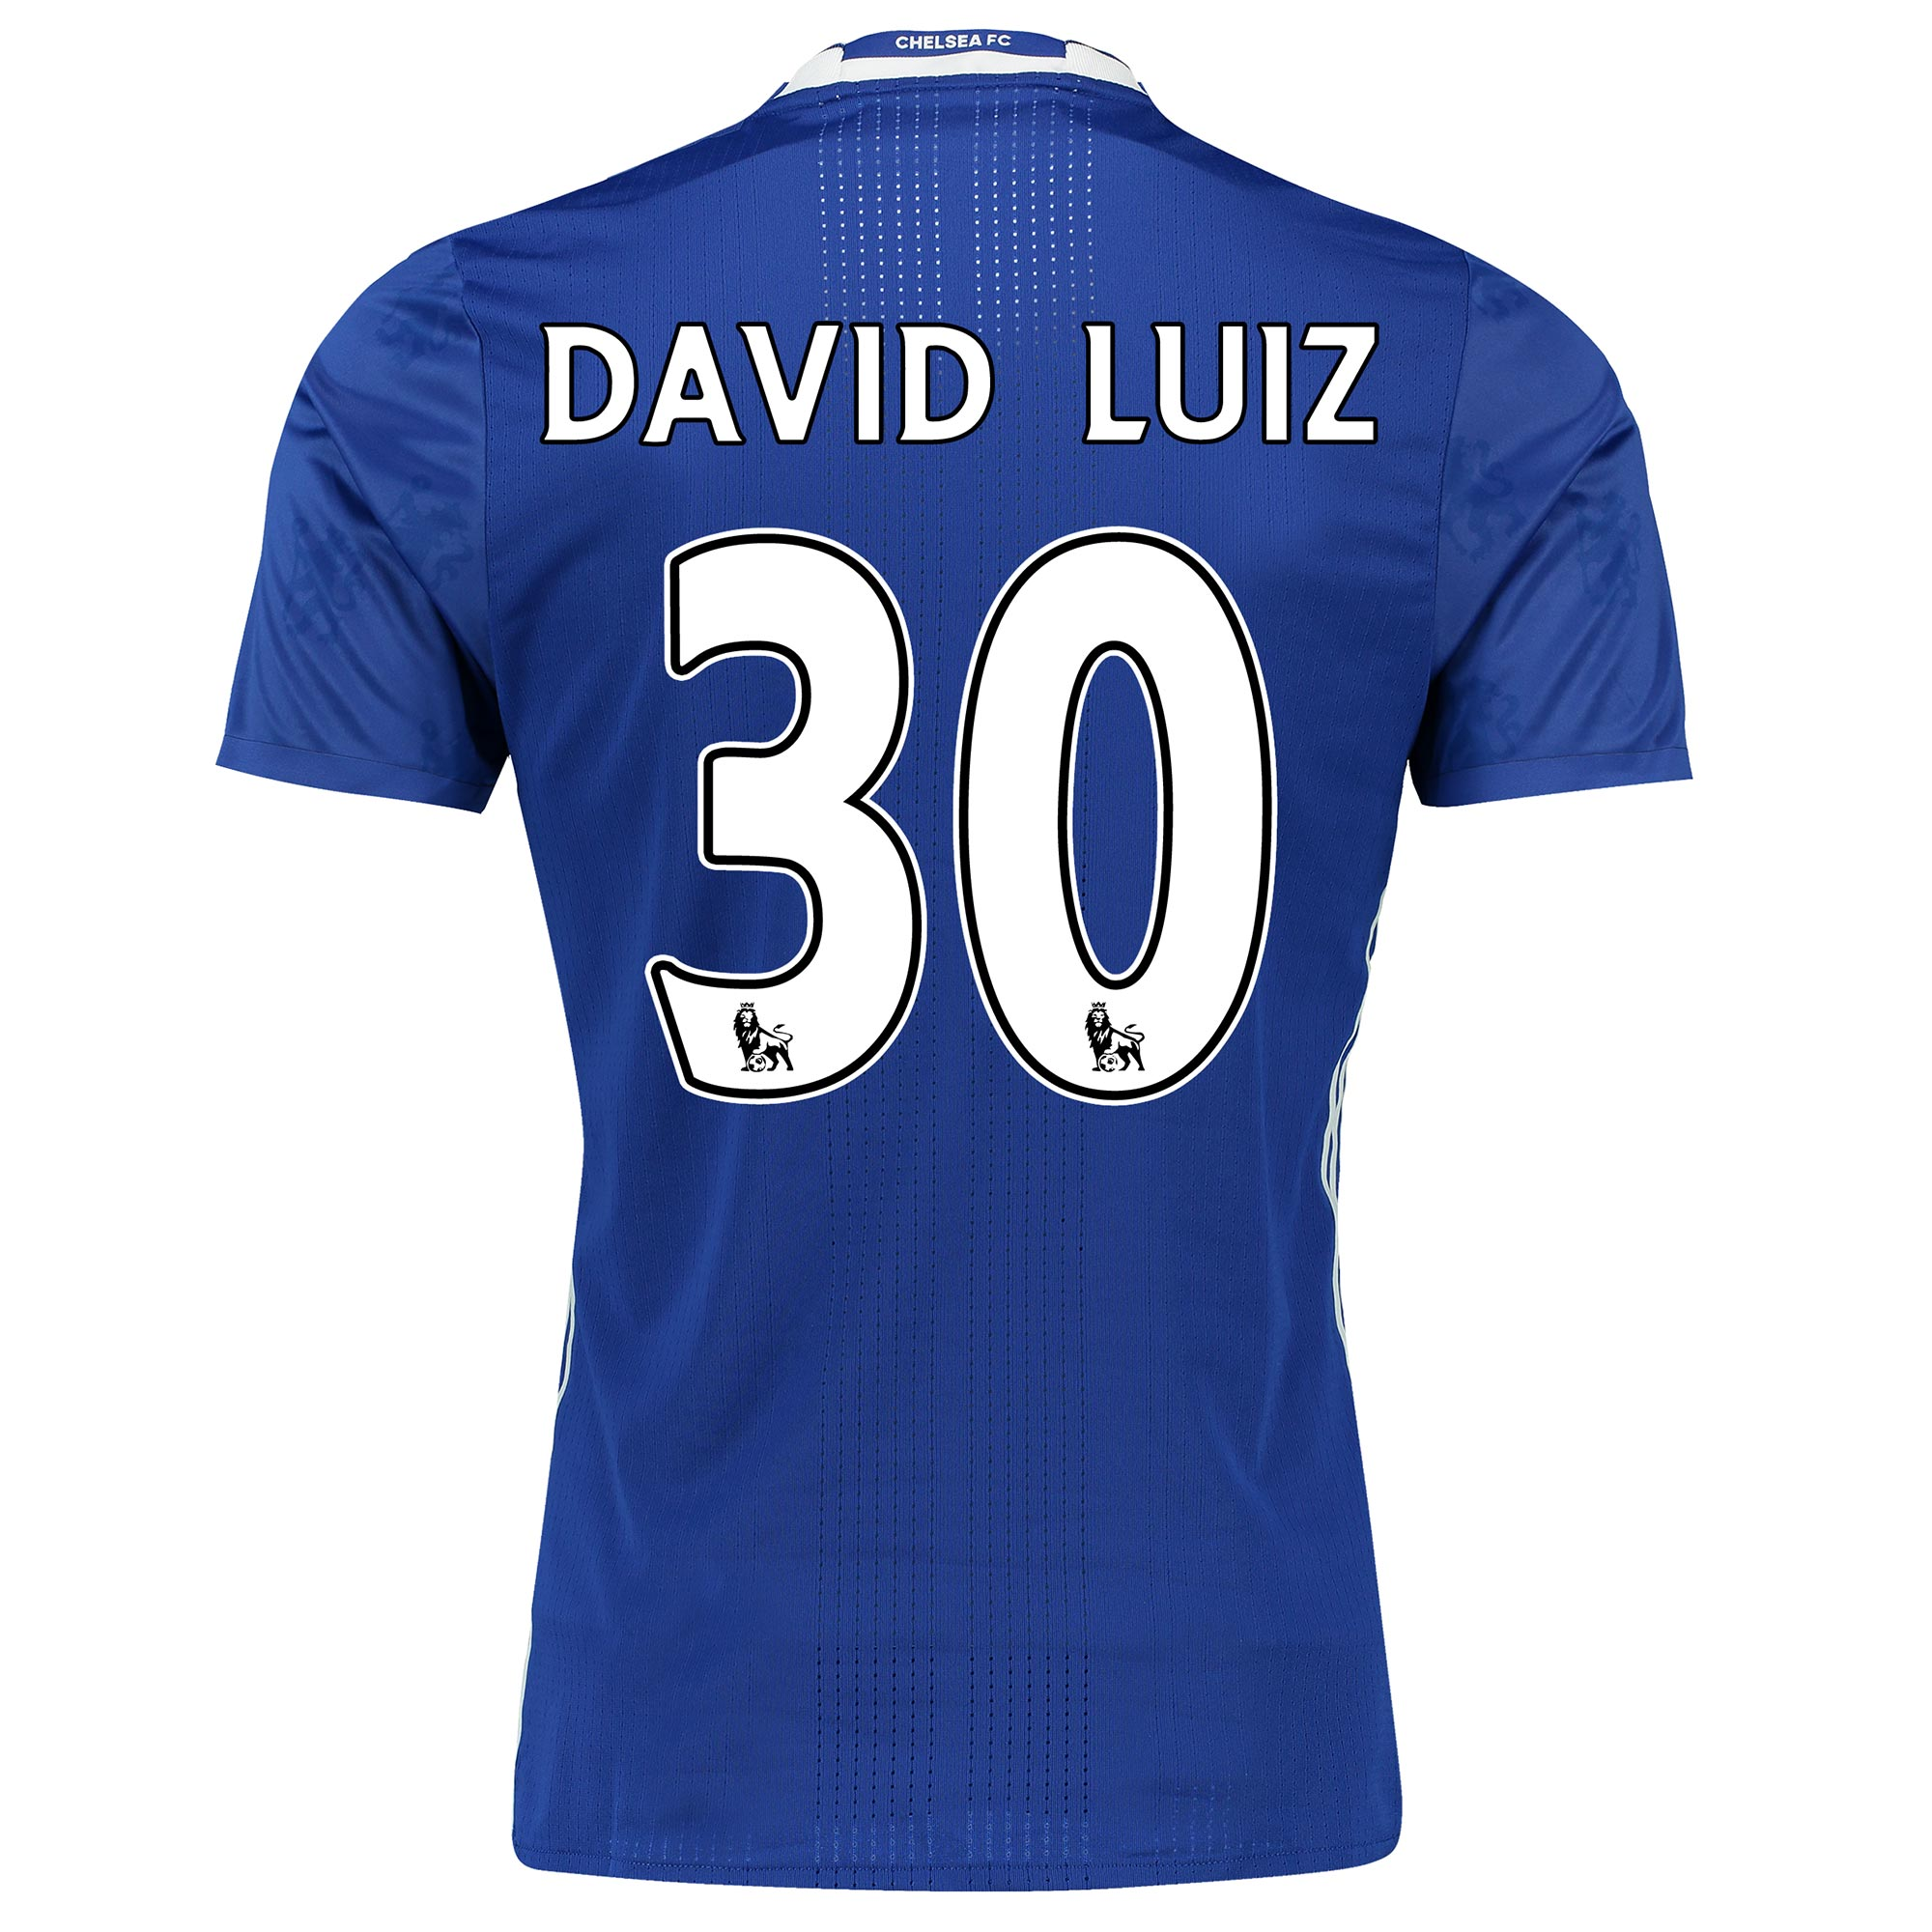 Shop David Luiz Printed Shirts